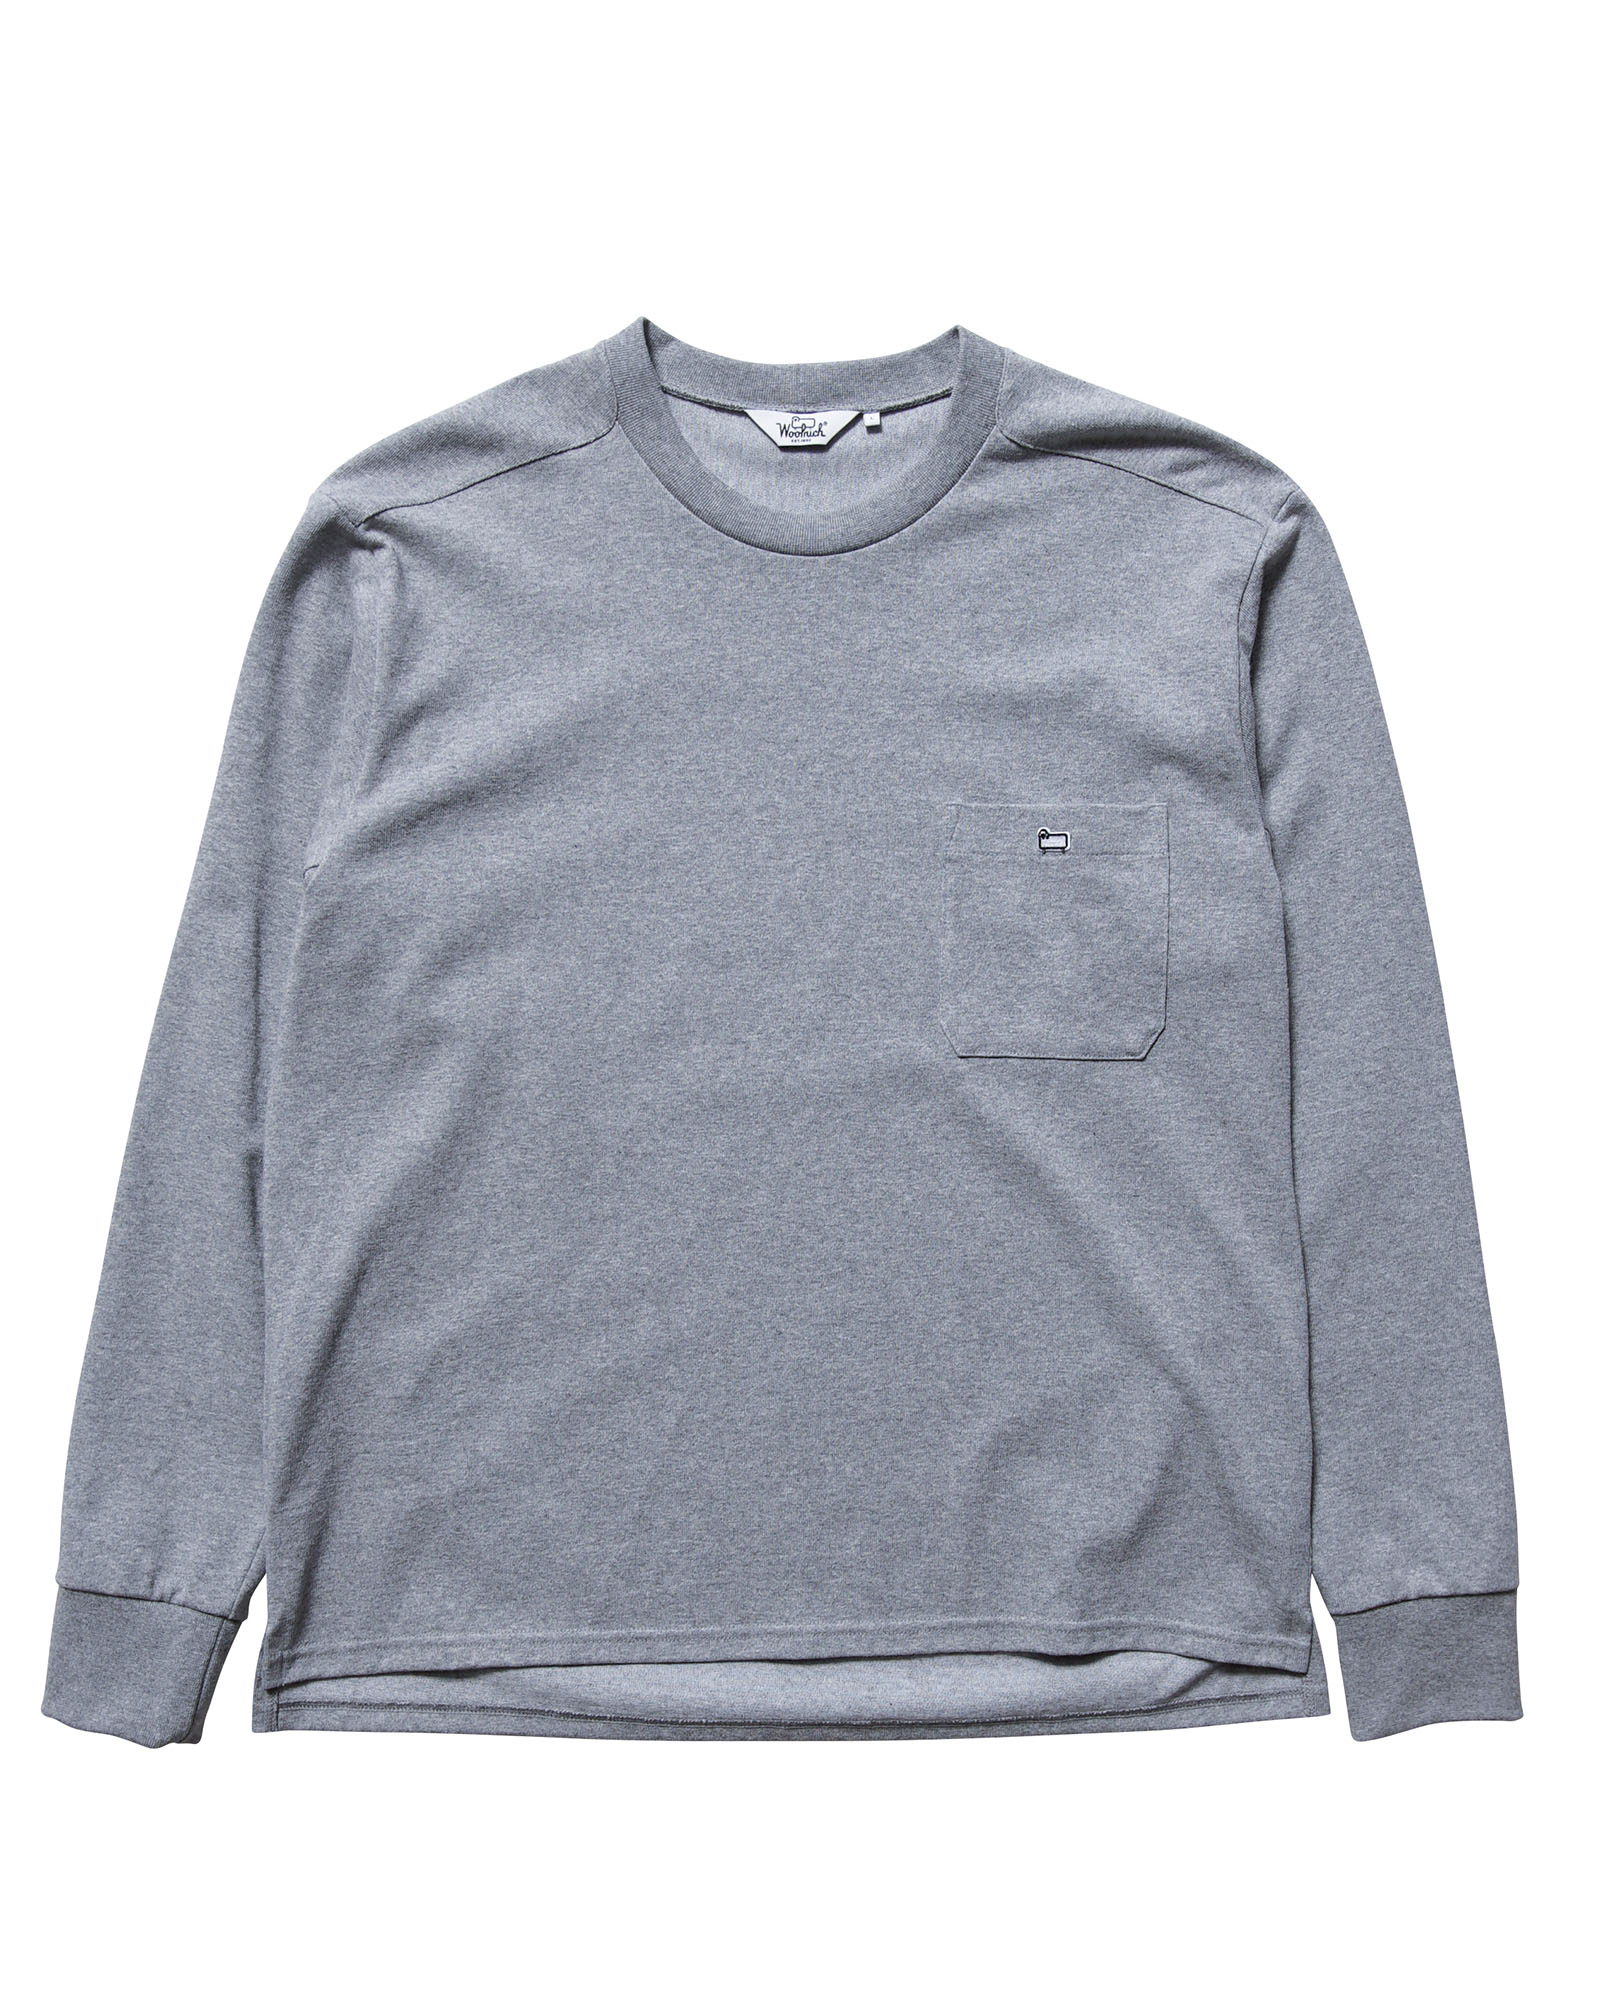 C/N ROUND BODY EMBROIDERY L/S TEE